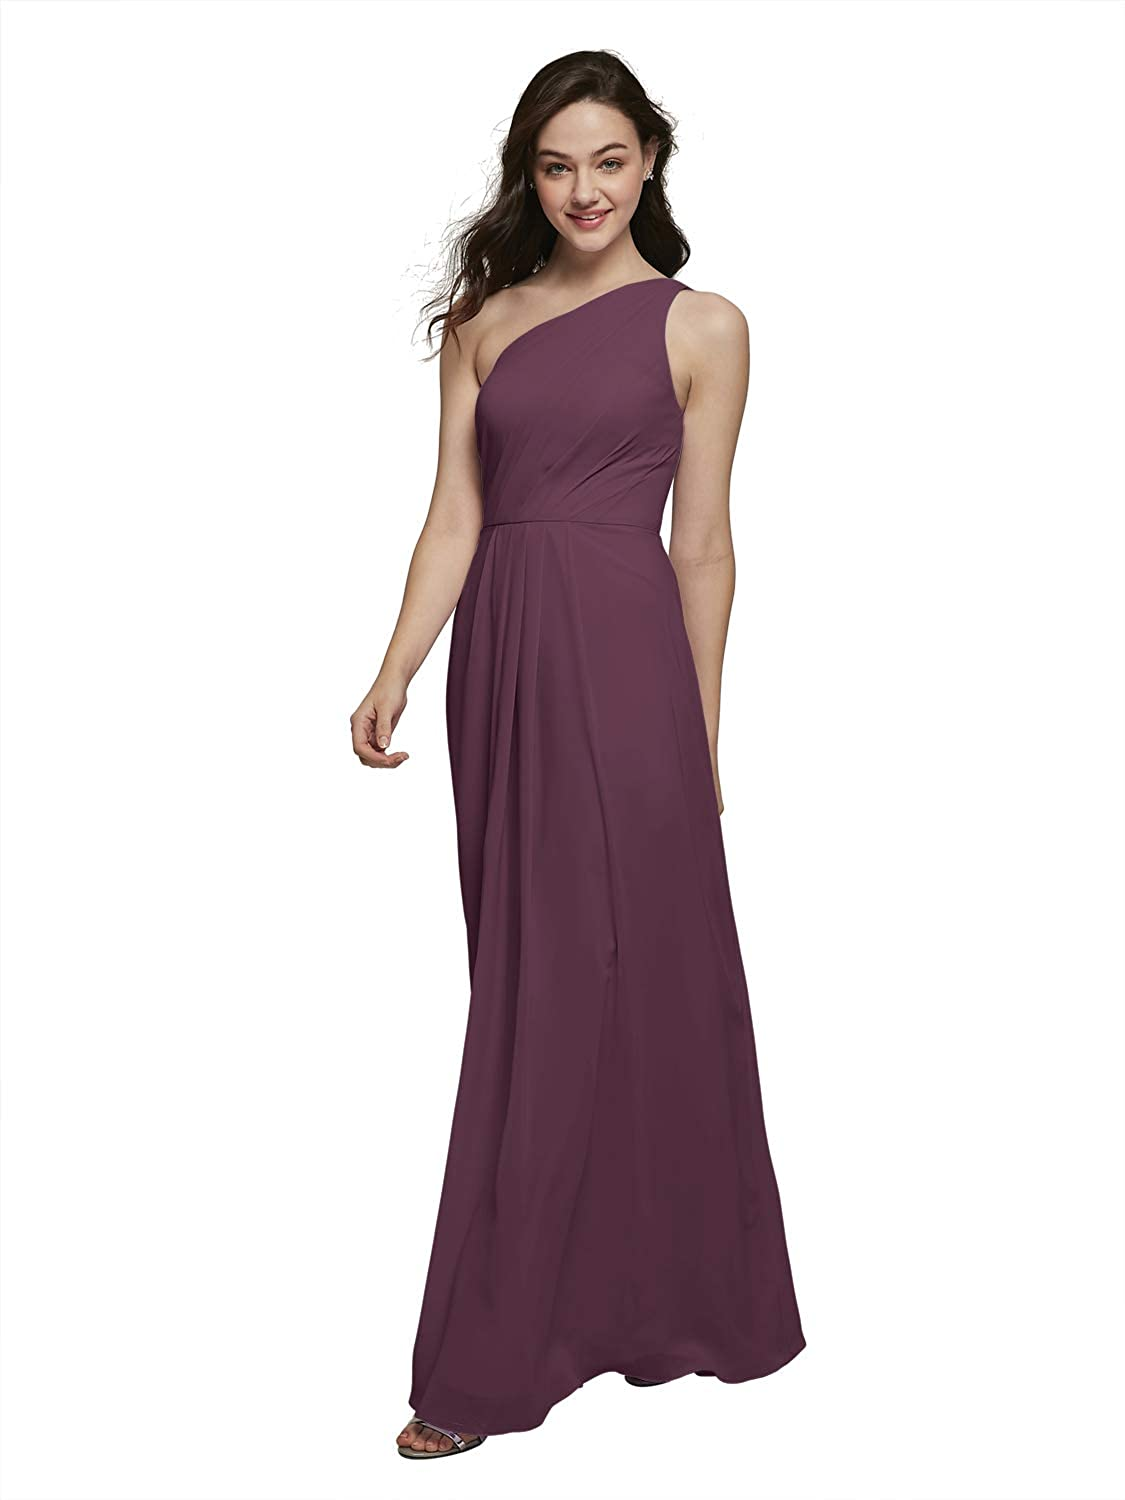 Alicepub One Shoulder Chiffon Bridesmaid Dresses Long Formal Dress for Special Ocassion